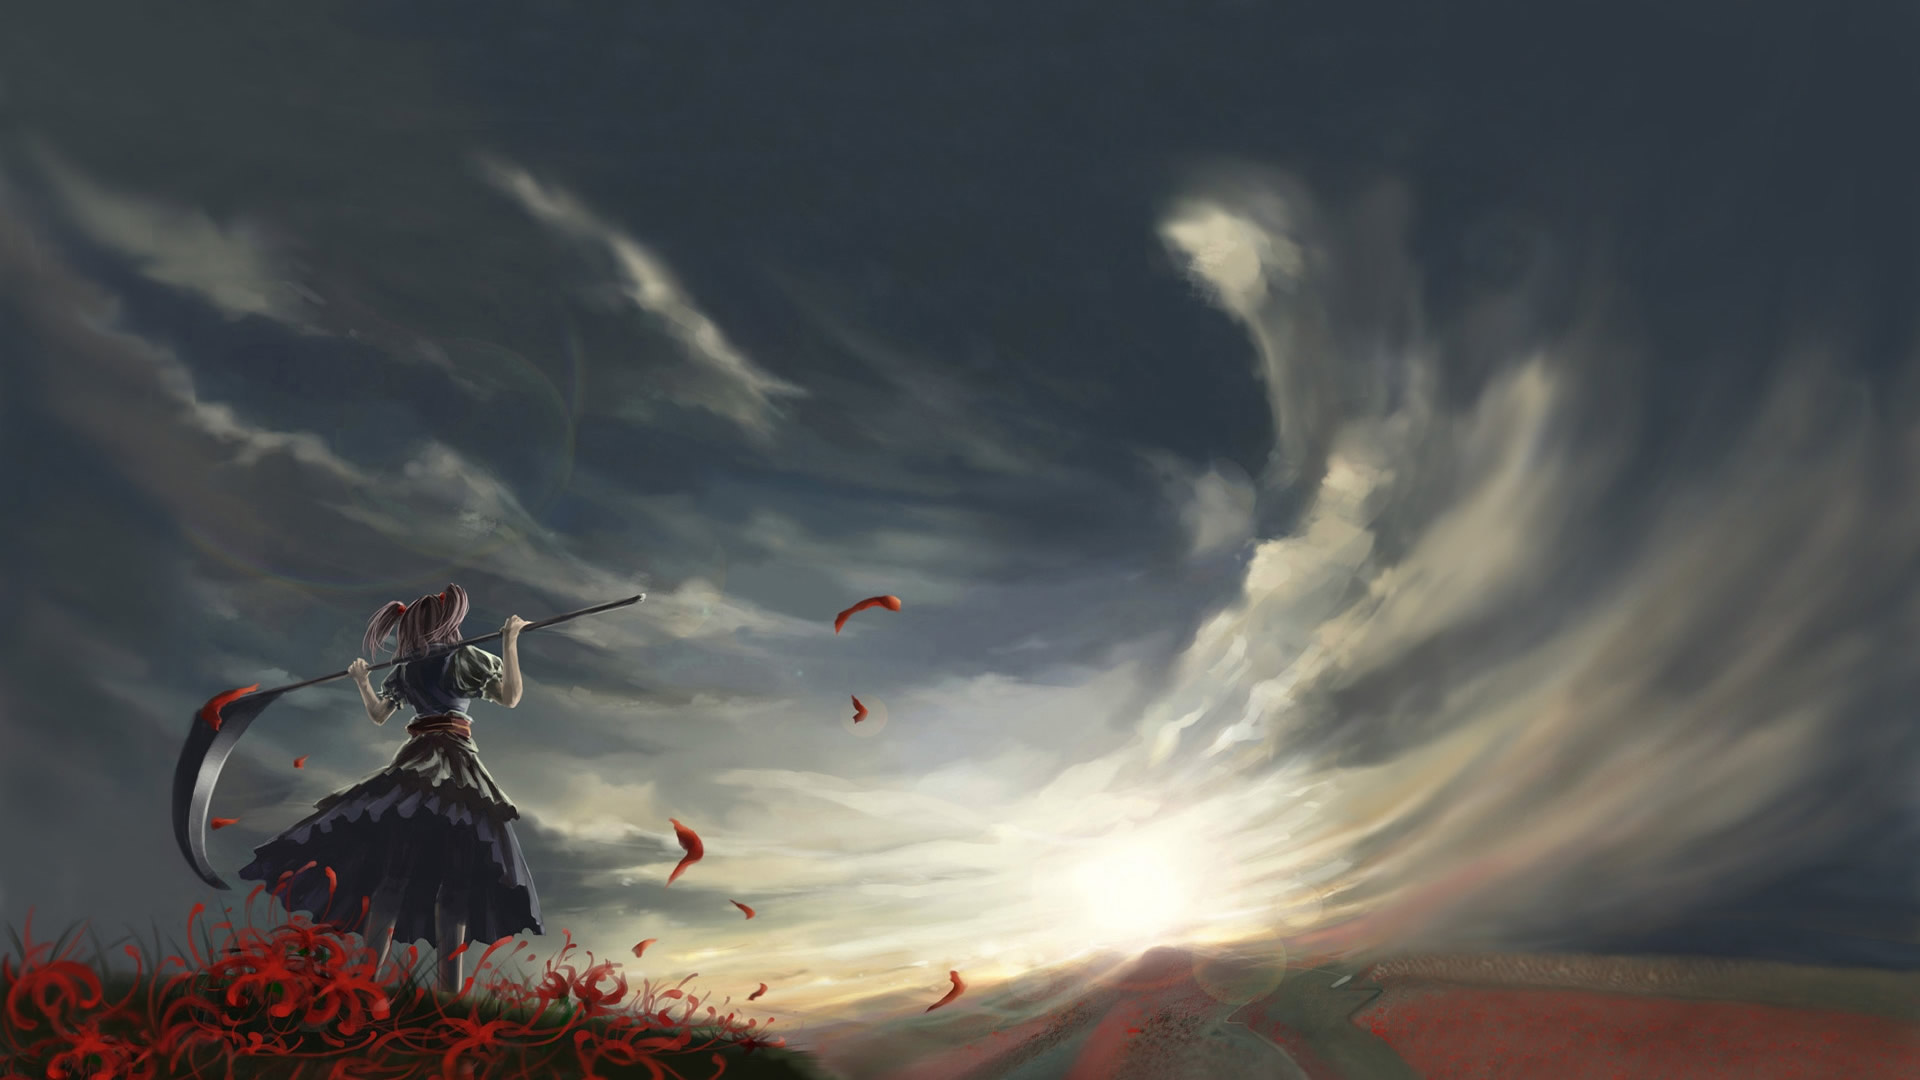 Most Epic Anime Wallpapers High Resolution - Beautiful Anime Backgrounds Hd - HD Wallpaper